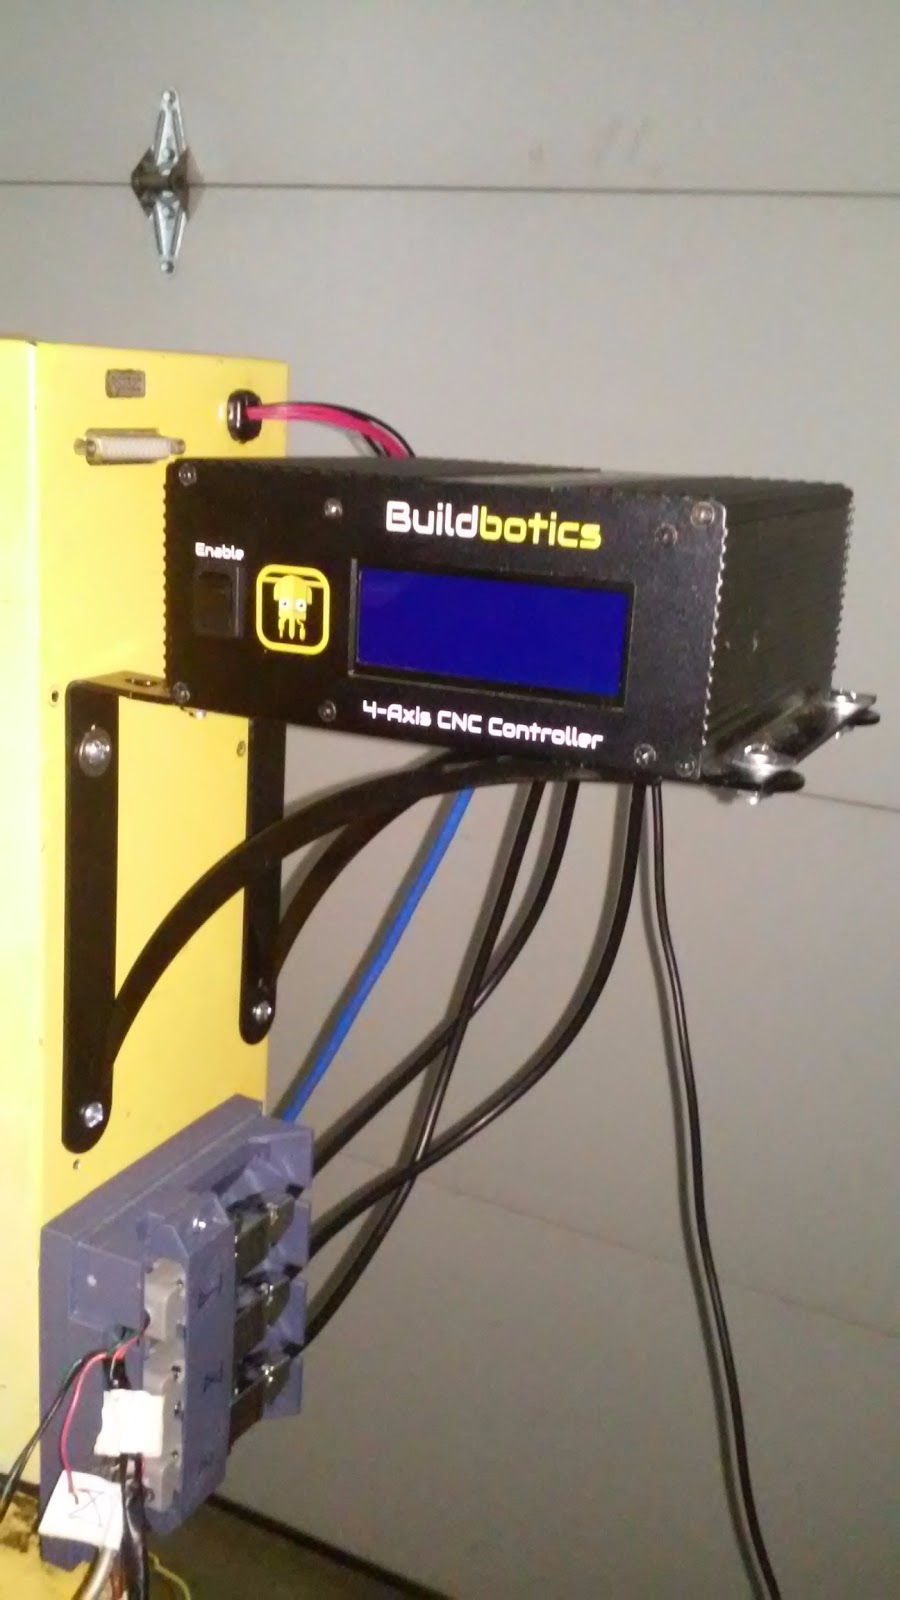 Instructions Cnc Retrofit With A Buildbotics Controller The Figure Shows Connections For Db25 Connectors Use Table Youll Need To Drill Some Holes In Side Of Existing Control Enclosure Then Attach Brackets And